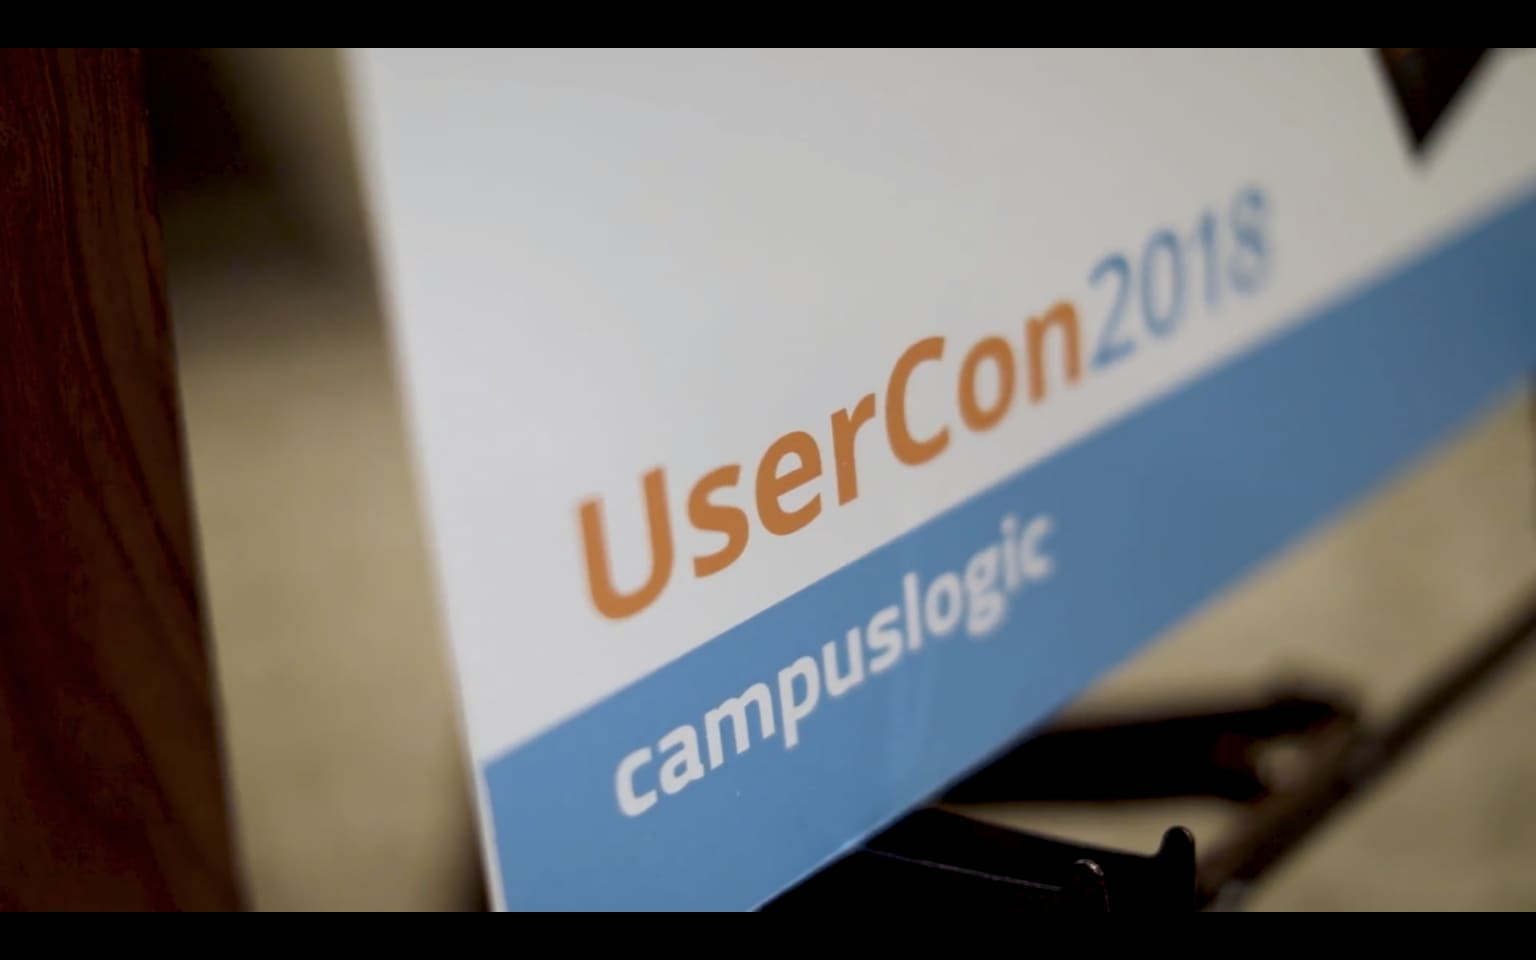 CampusLogic UserCon 2018 Event Highlight Reel